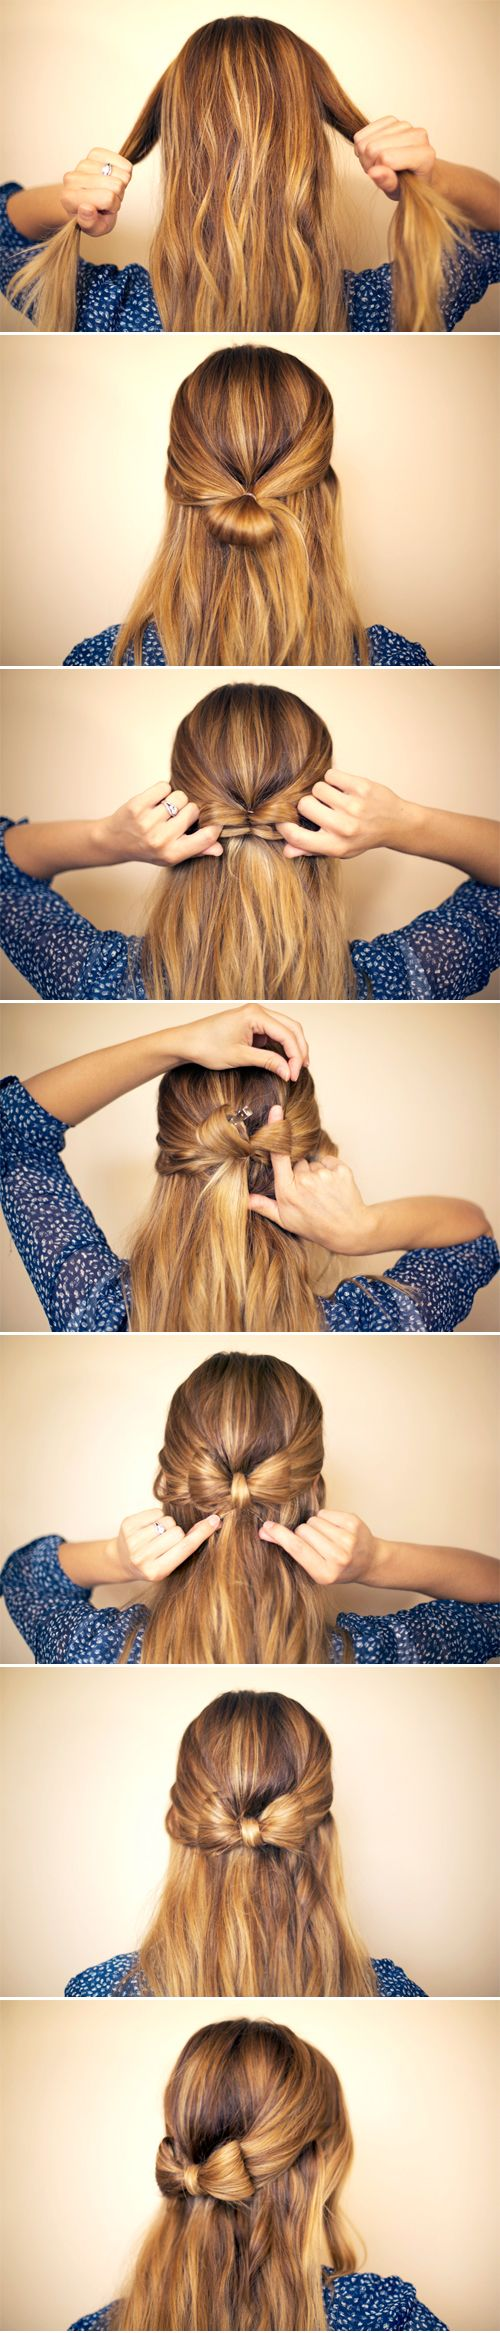 : Hairbow, Hairstyles, Hair Styles, Hairdos, Hair Do, Hair Bows